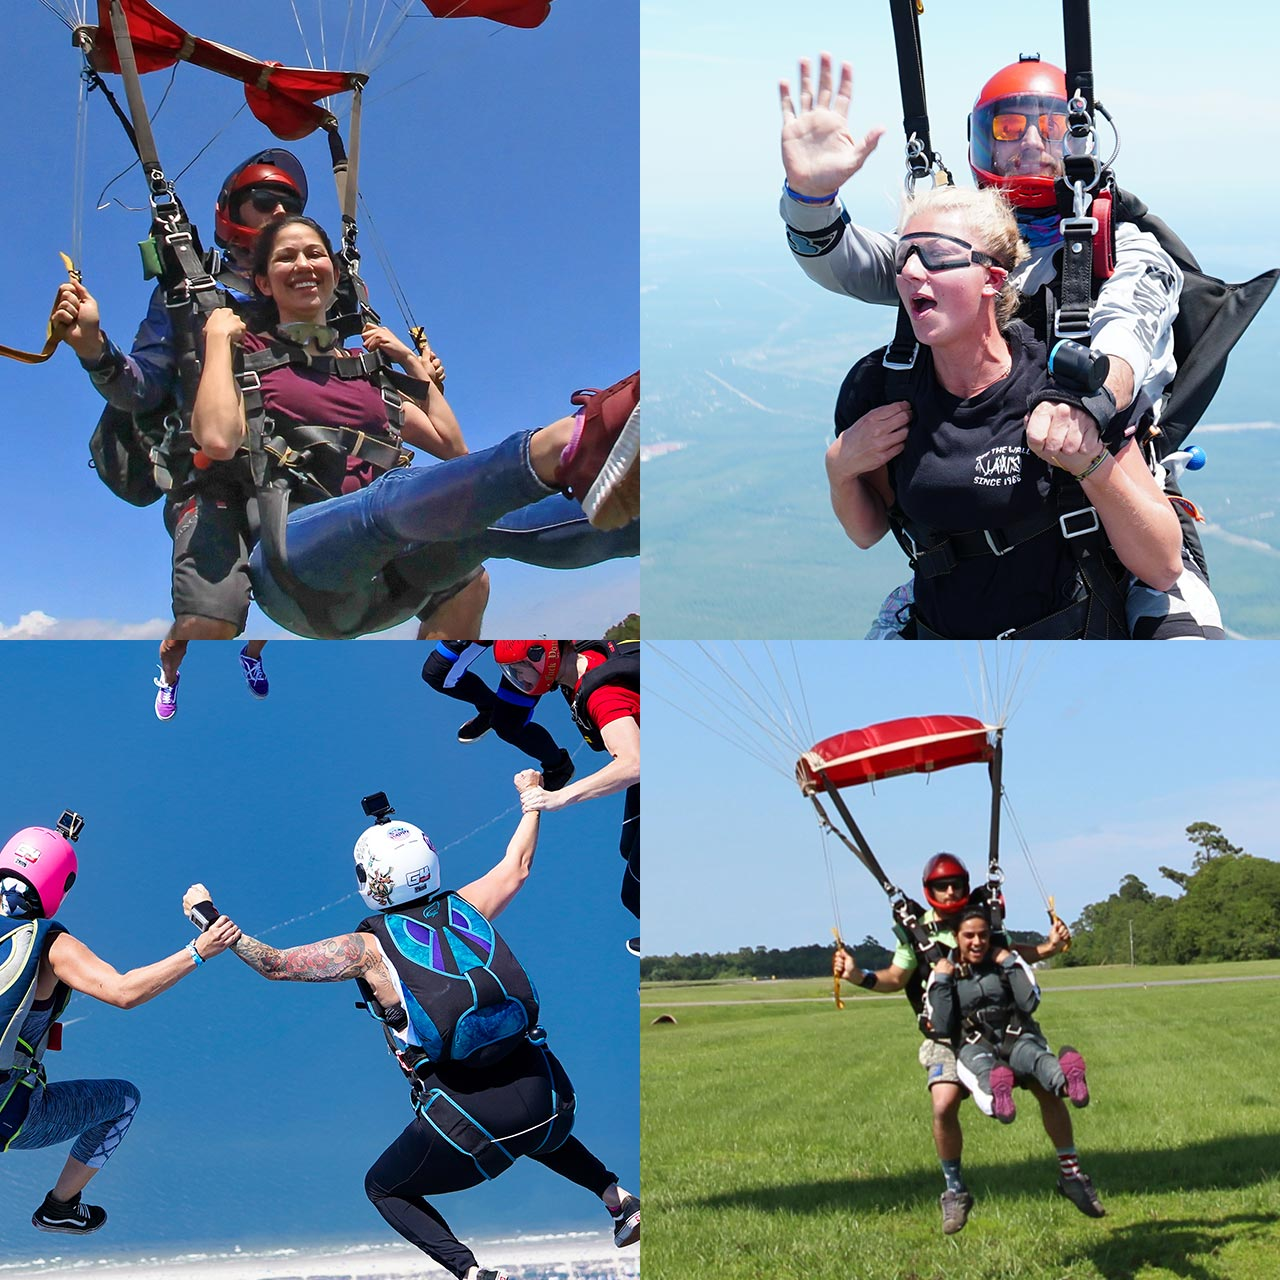 grid image of four separate skydiving shots three with tandem skydivers and one with licensed skydiver sin head up orientation